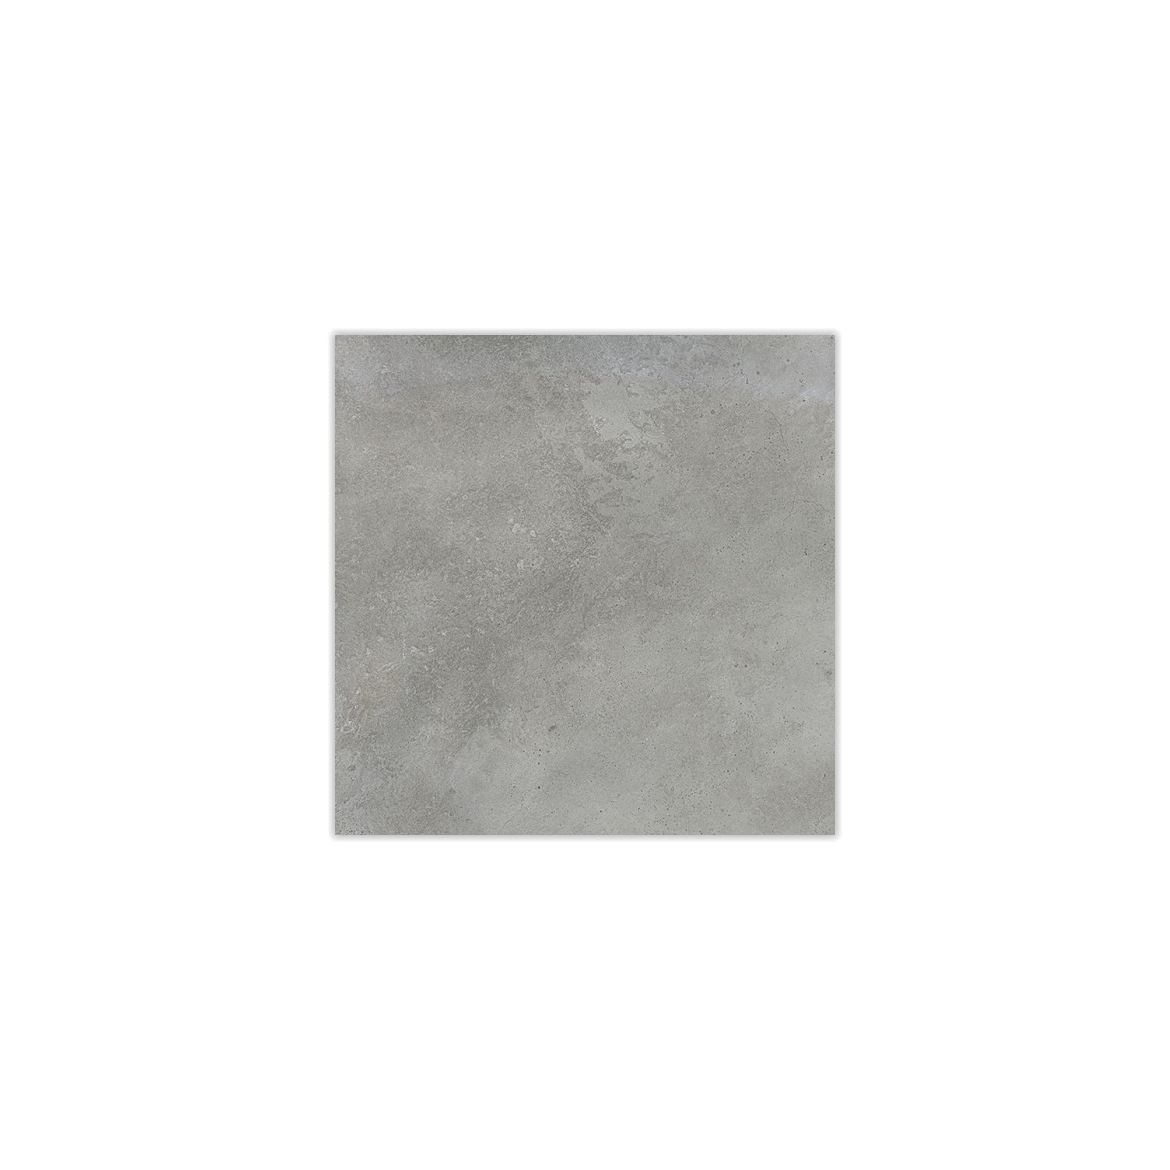 https://cerdesign.pl/518-large_default/p12901-cotto-petrus-emotion-gris-60x60.jpg